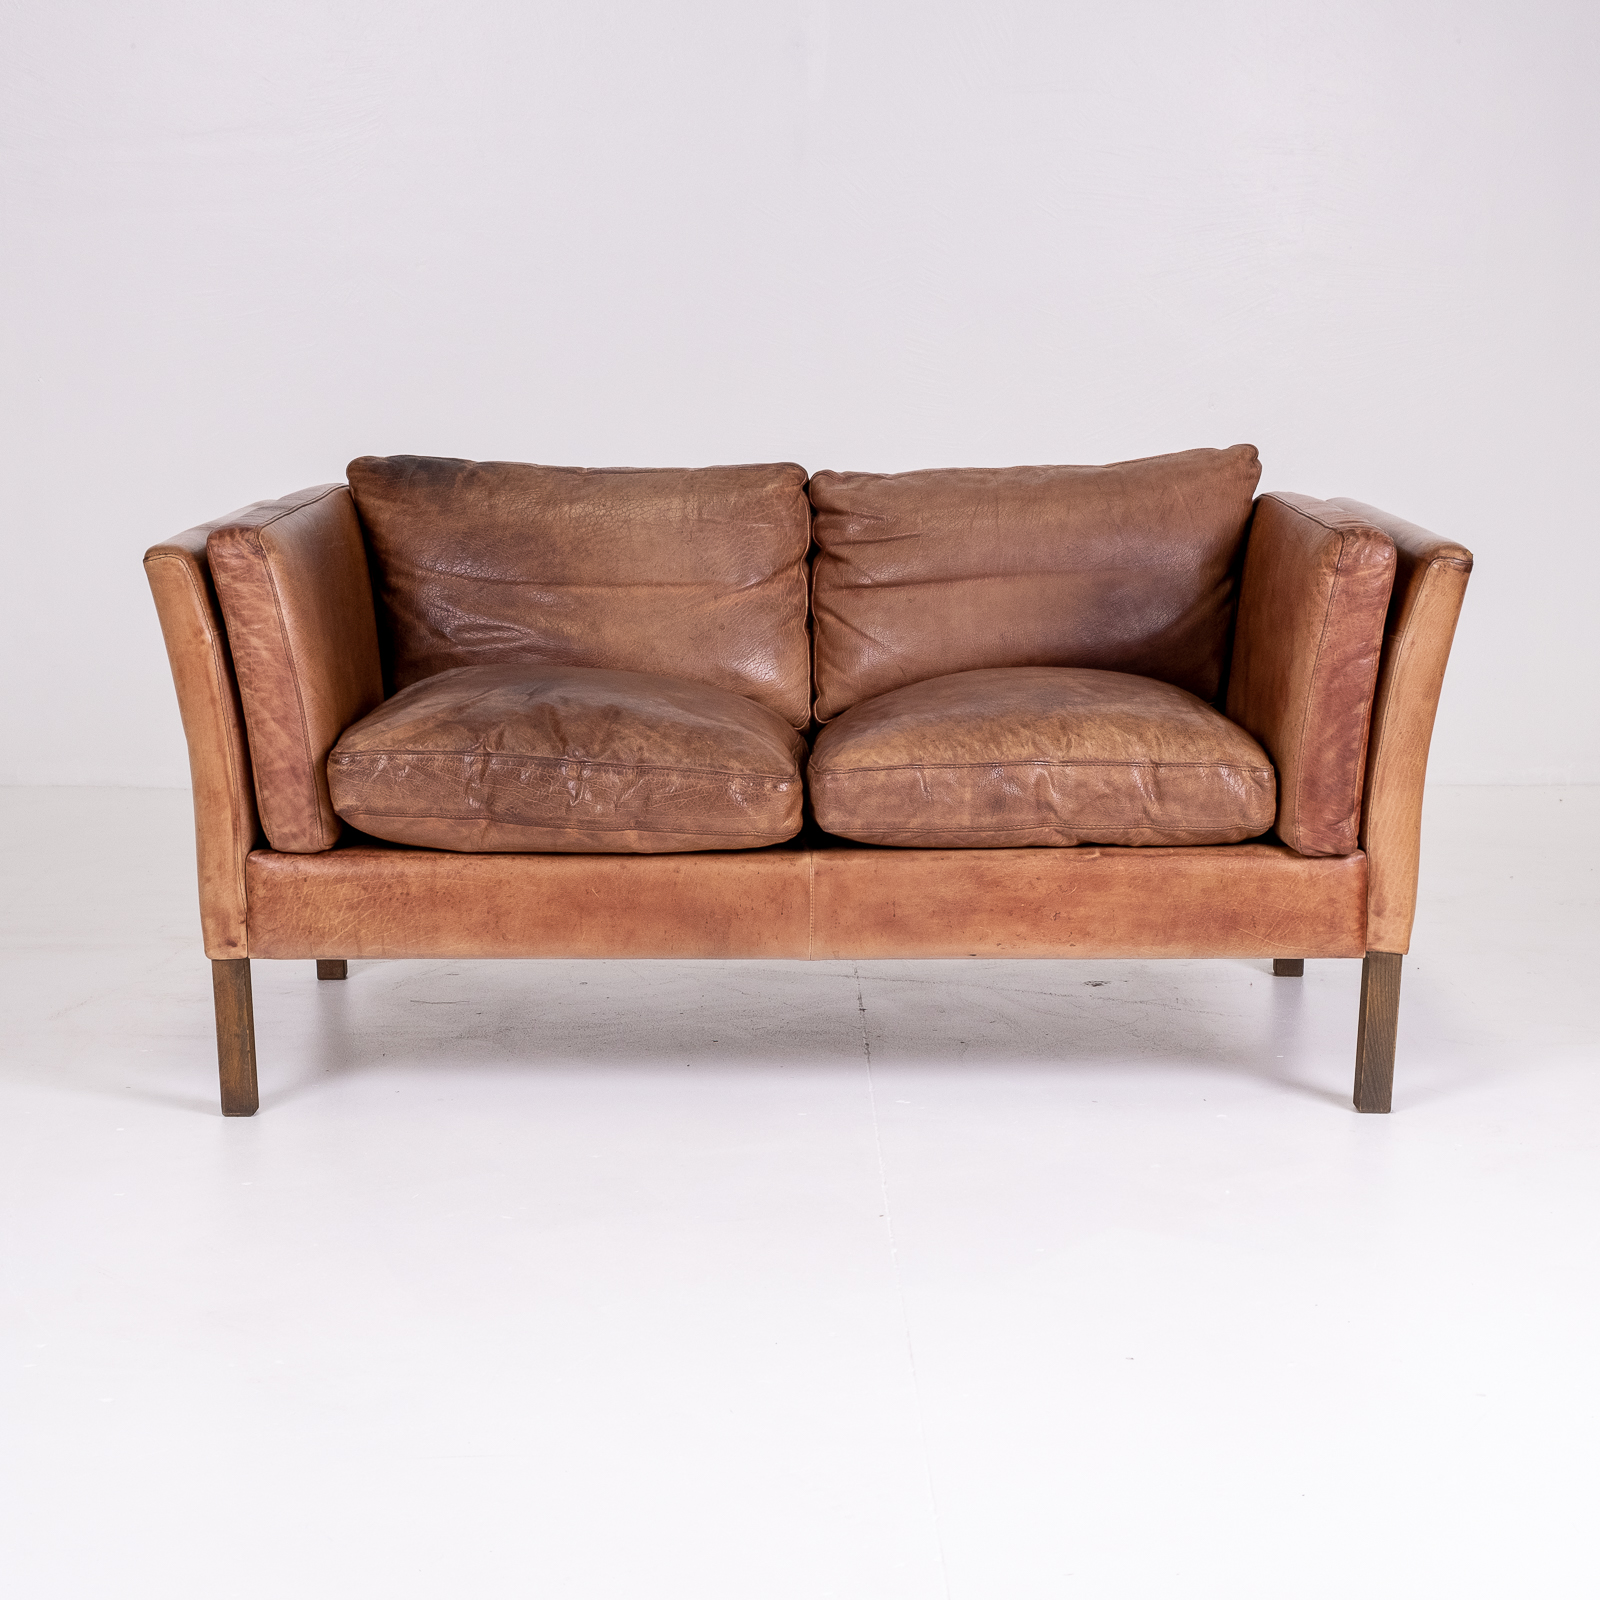 2 Seat Sofa By Stouby In Tan Leather, 1960s, Denmark 03